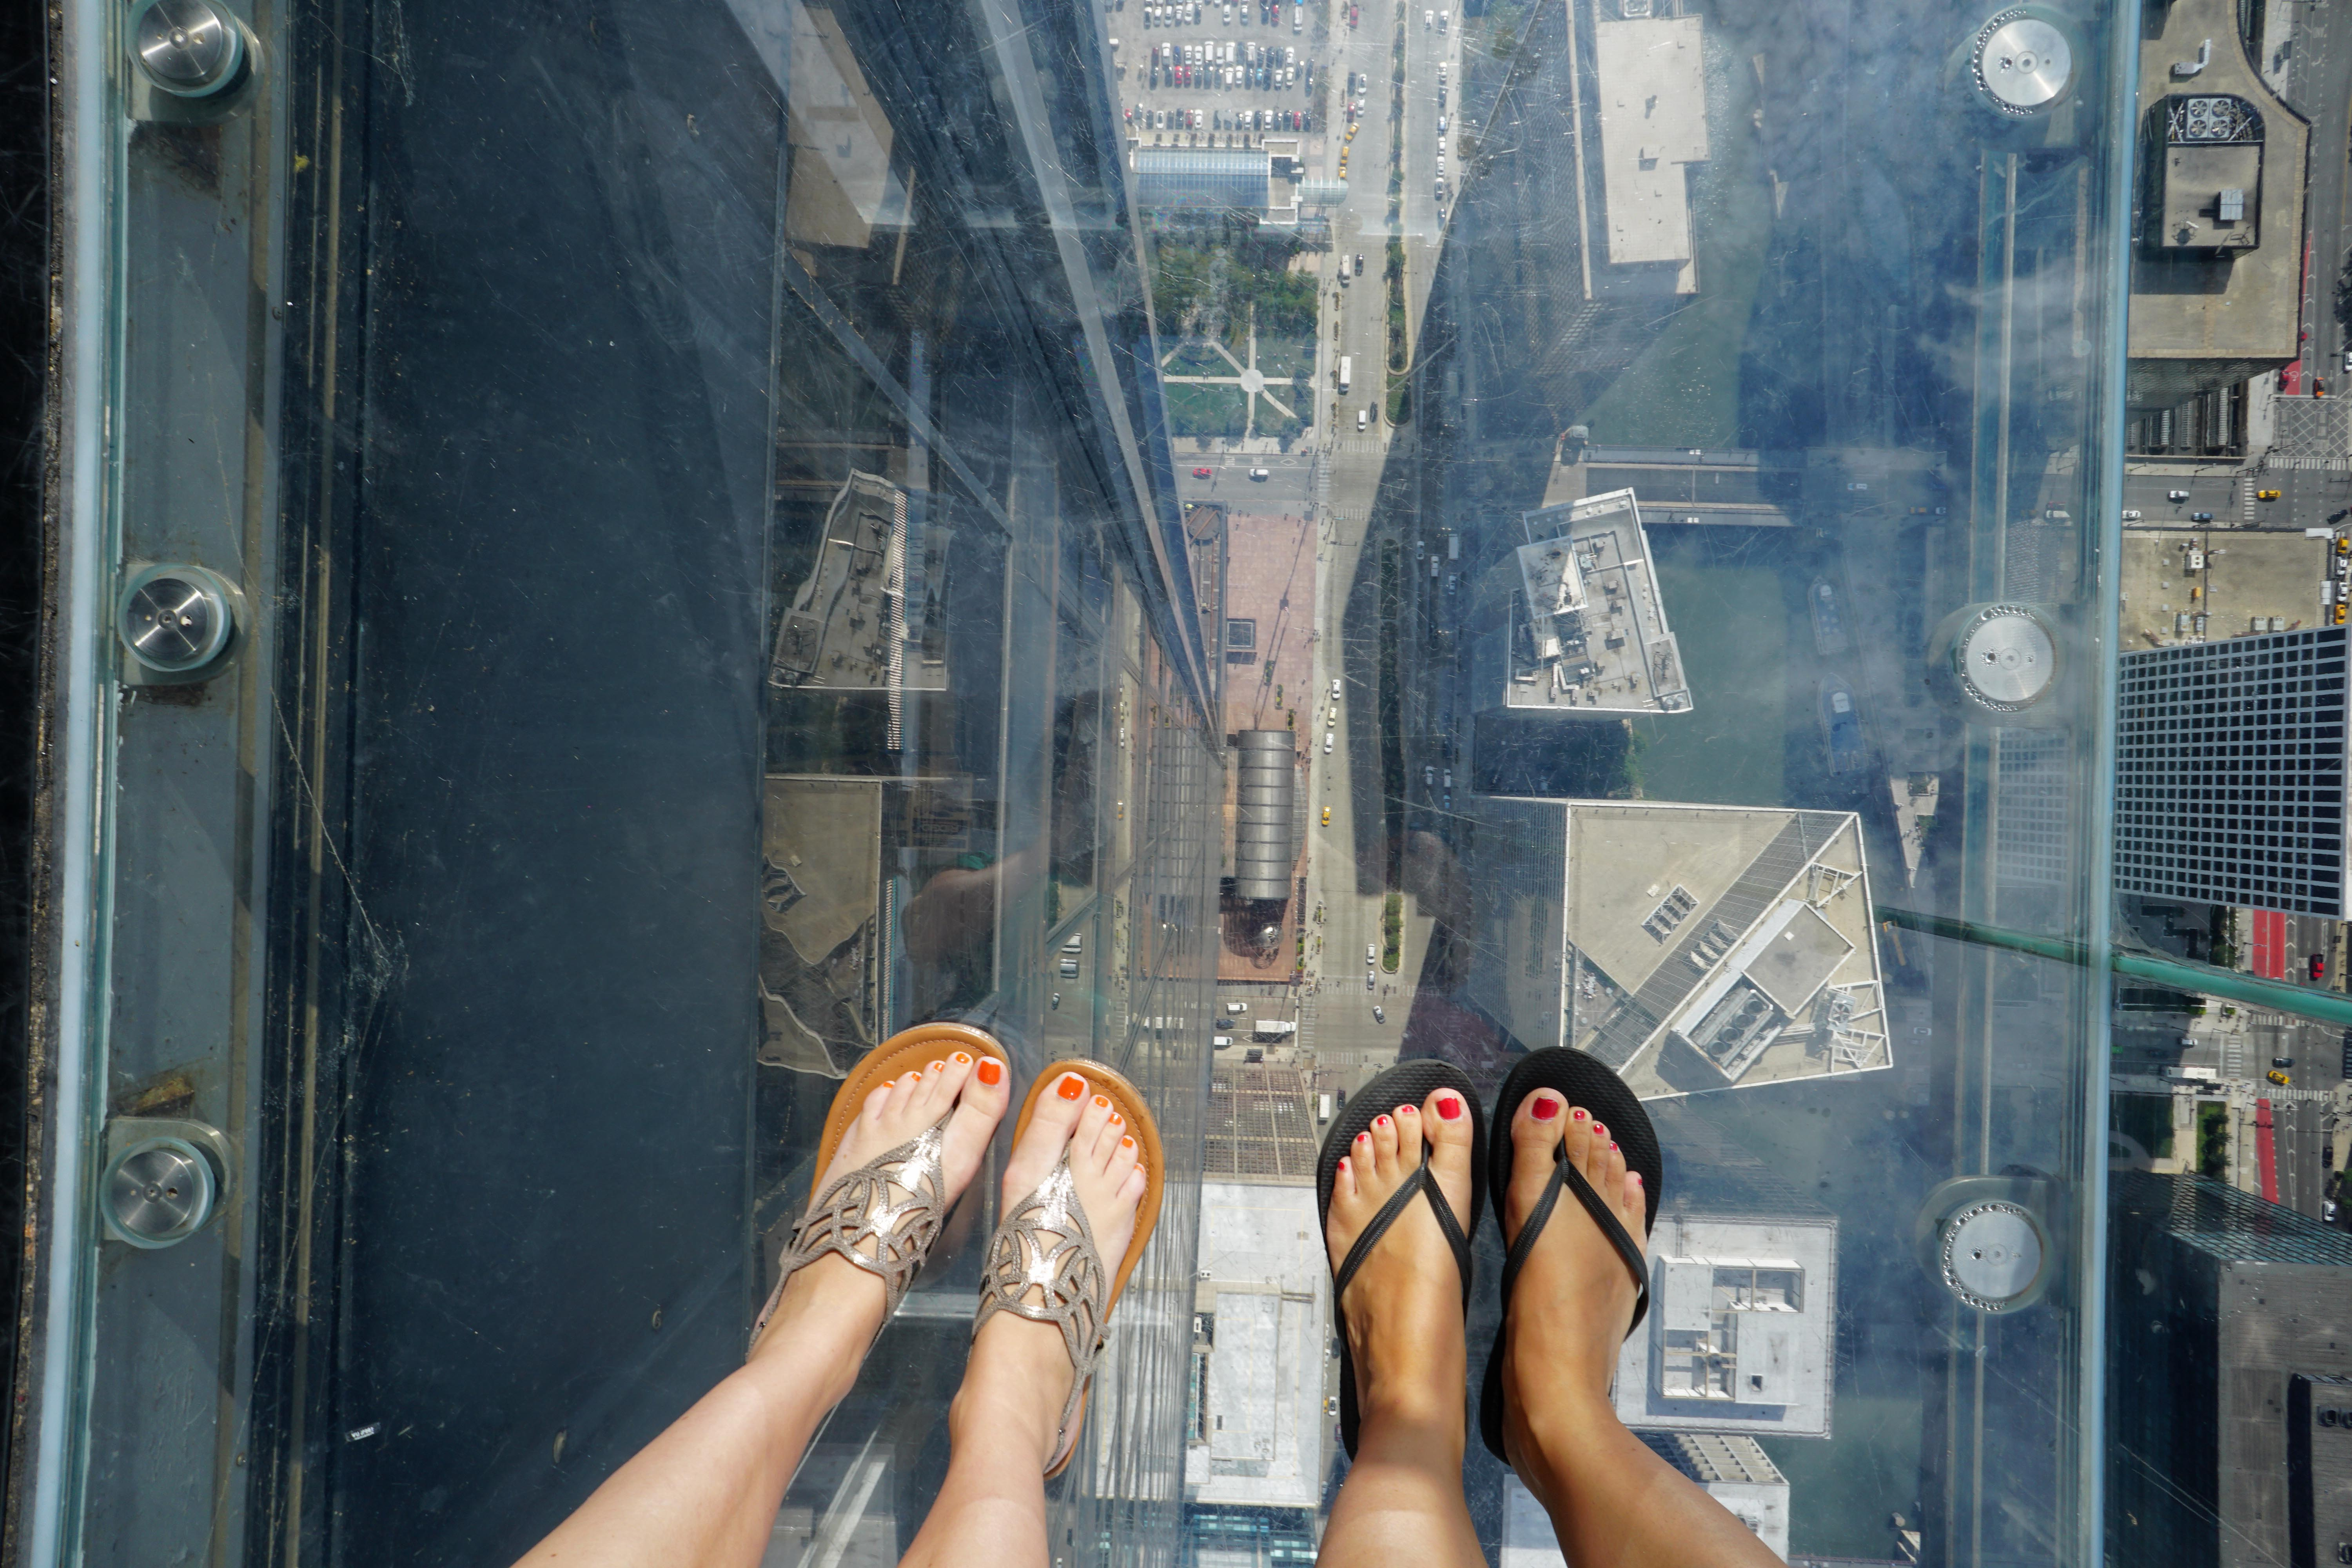 View of our feet looking down through the glass floor of The Ledge